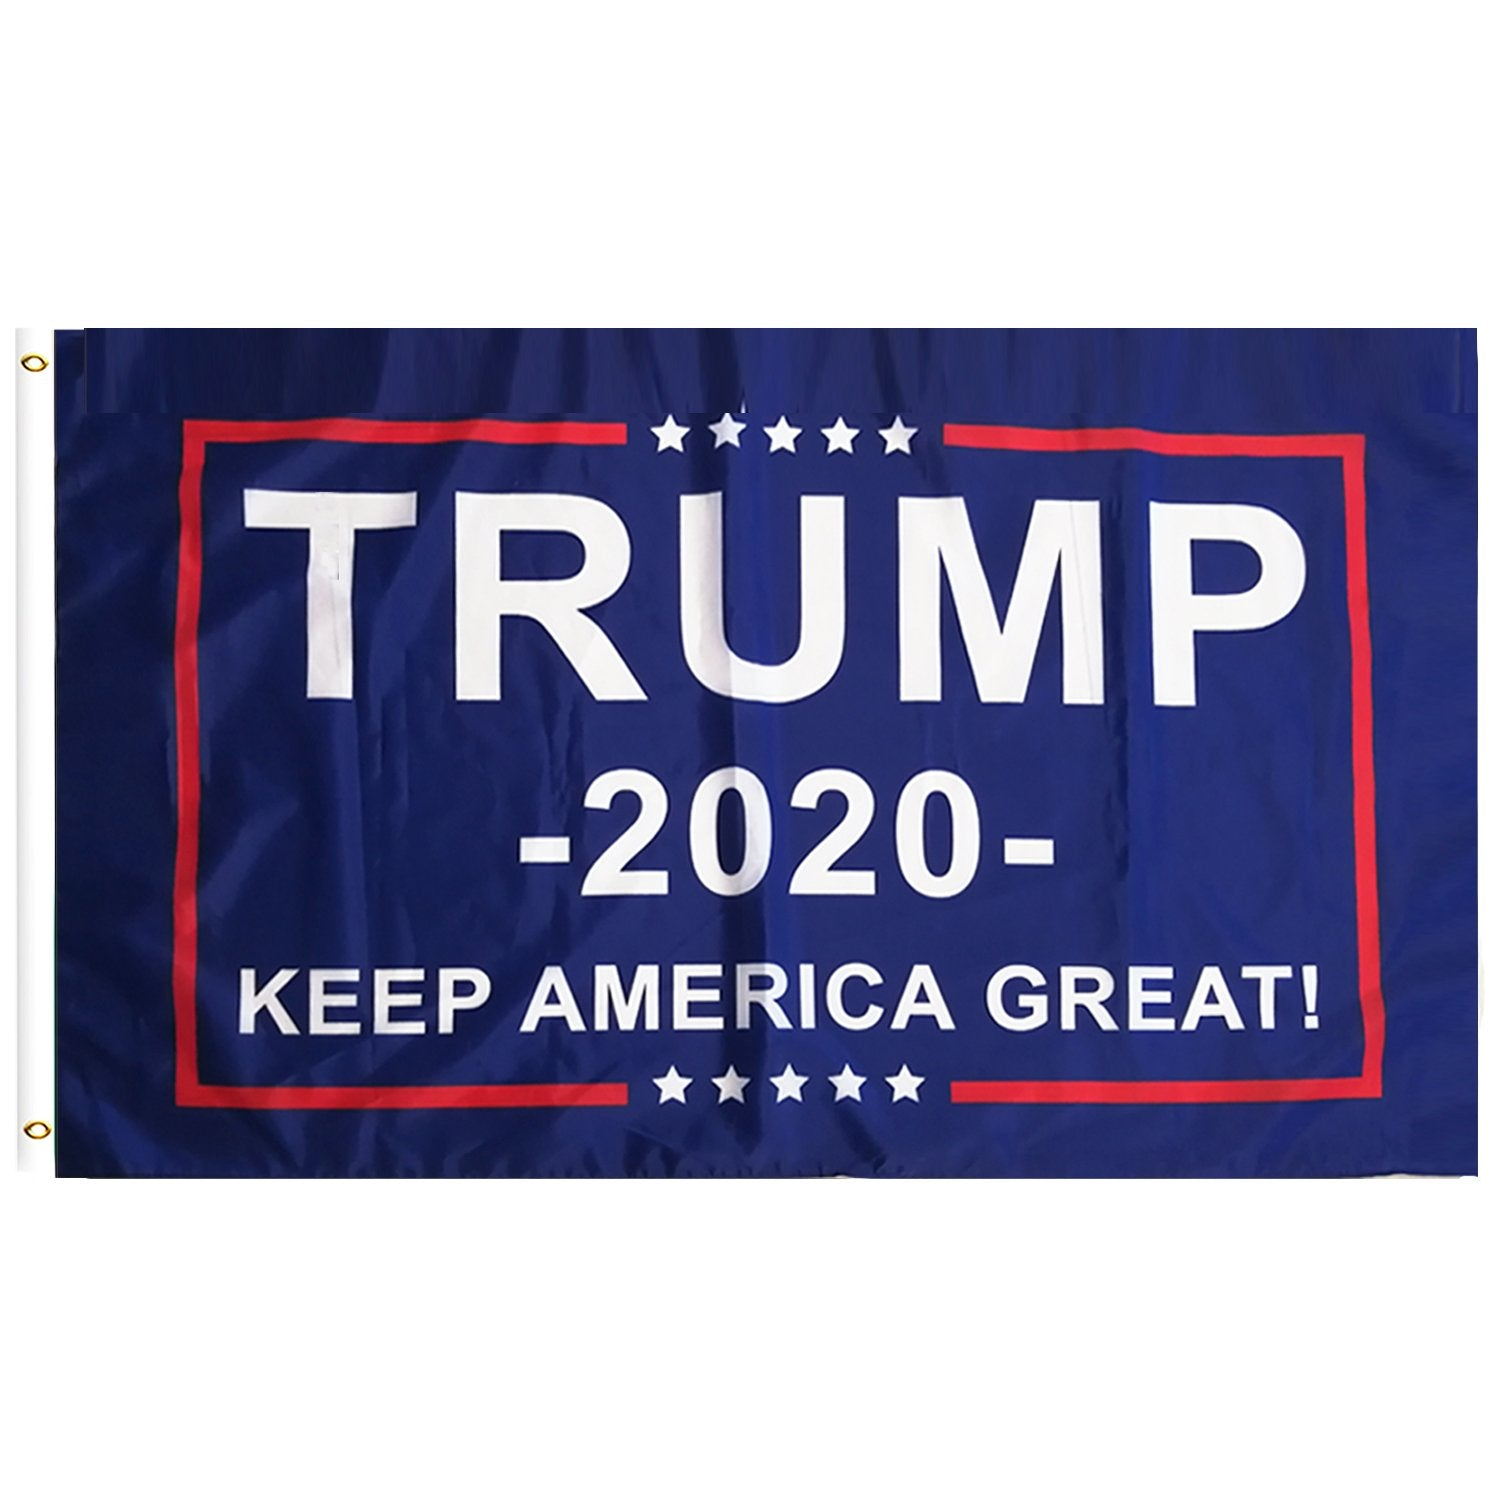 FREE Trump 2020 Flag - Keep America Great! - 3 ft x 5 ft